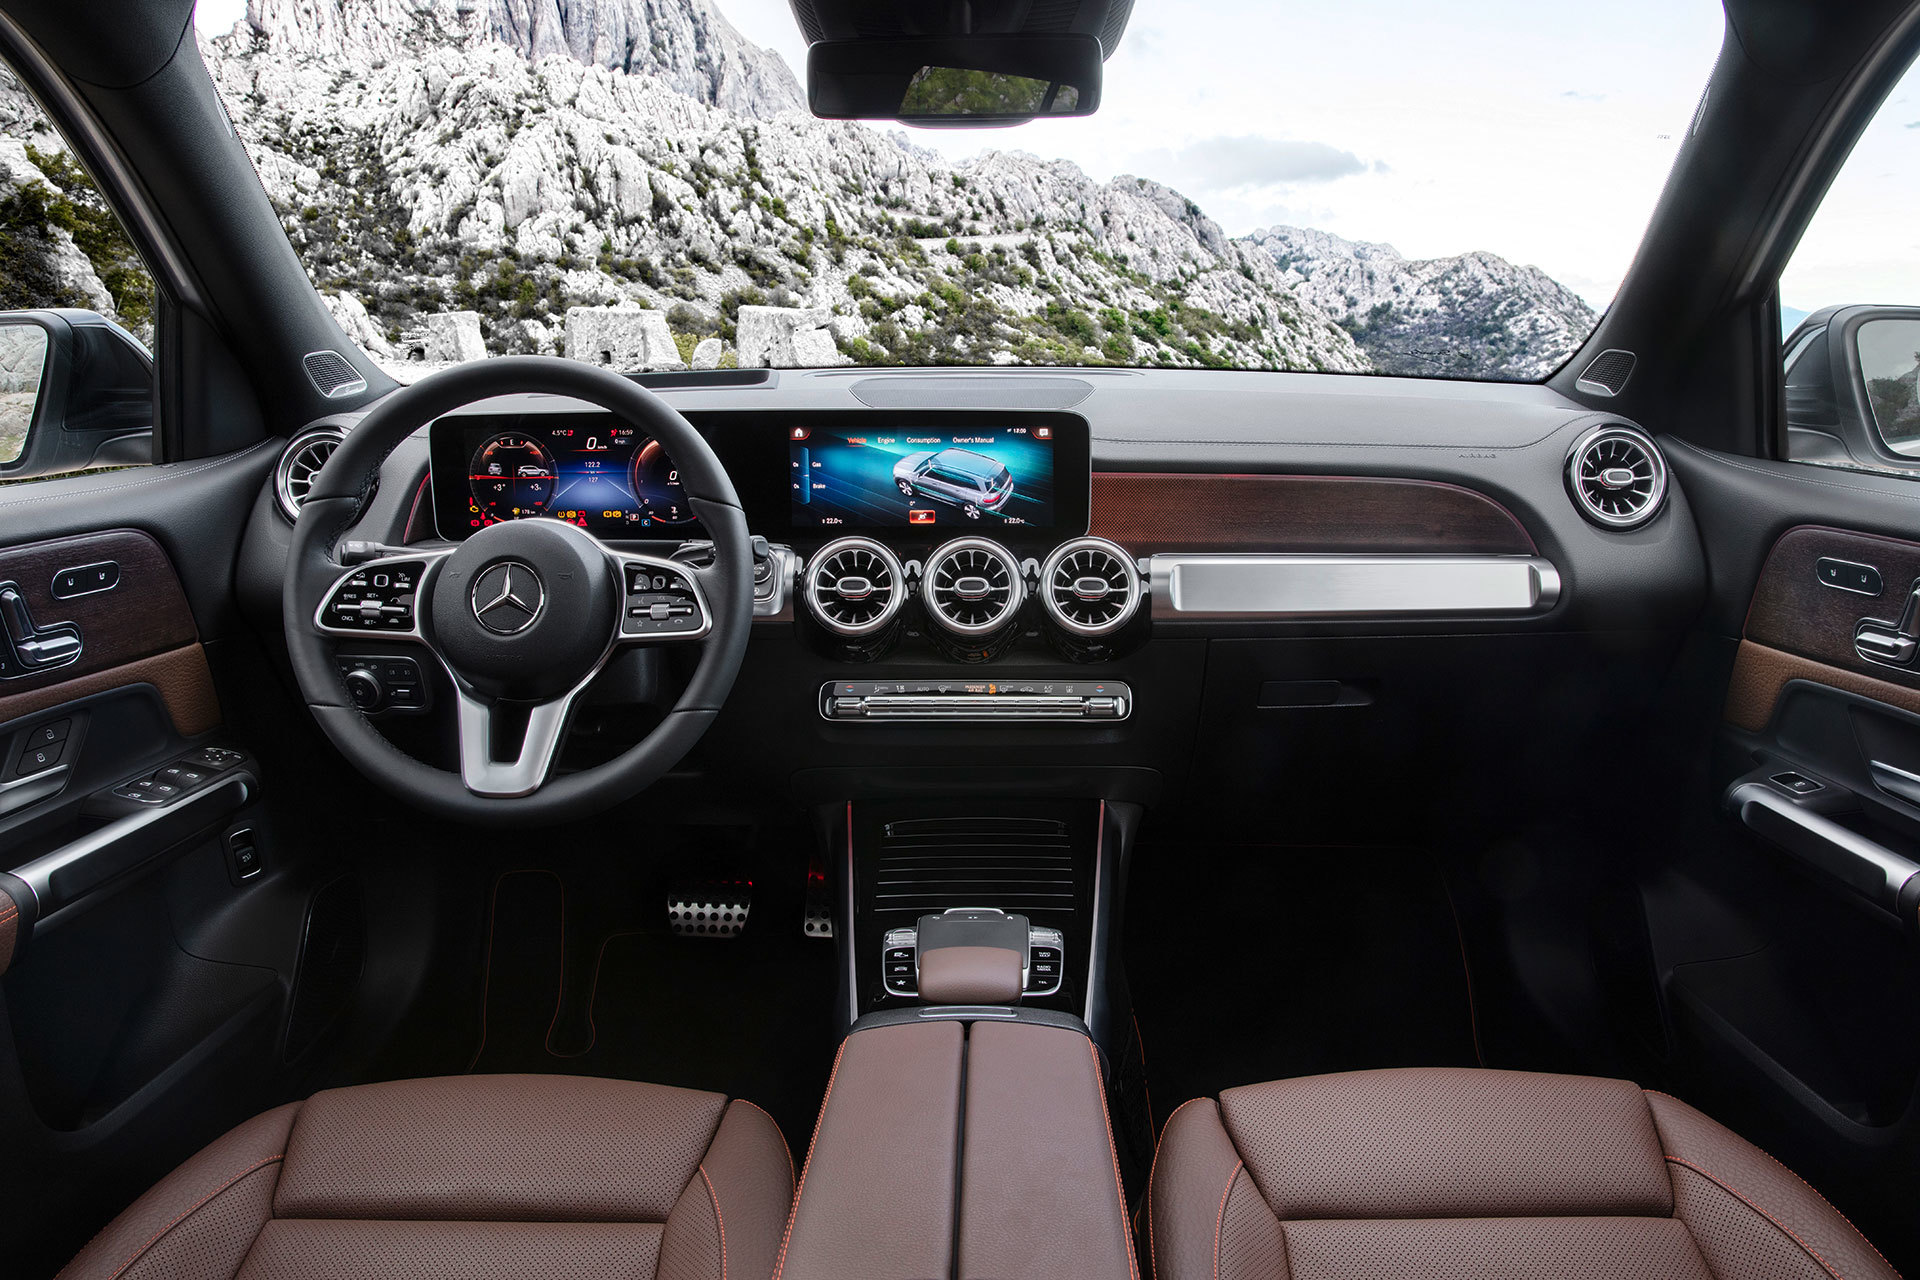 Mercedes Glb 2020 Interior 05